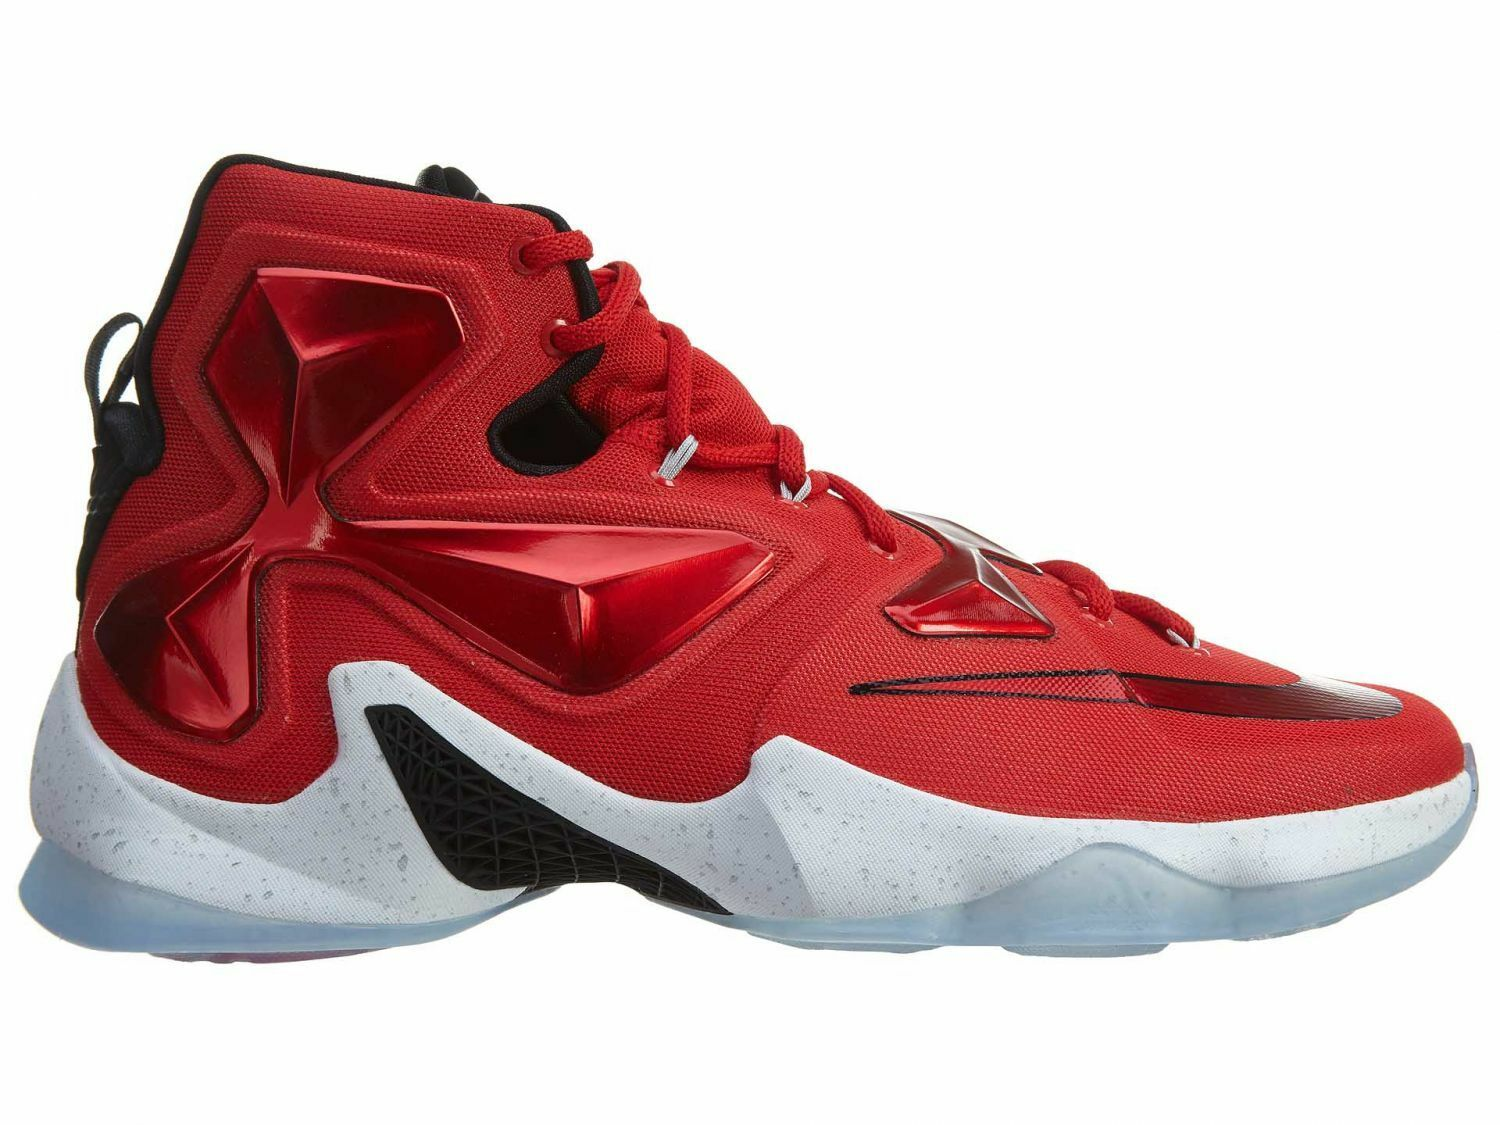 9e4911b5c90 ... cheapest nike lebron xiii red 13 mens 807219 610 university red xiii  basketball shoes size 8.5